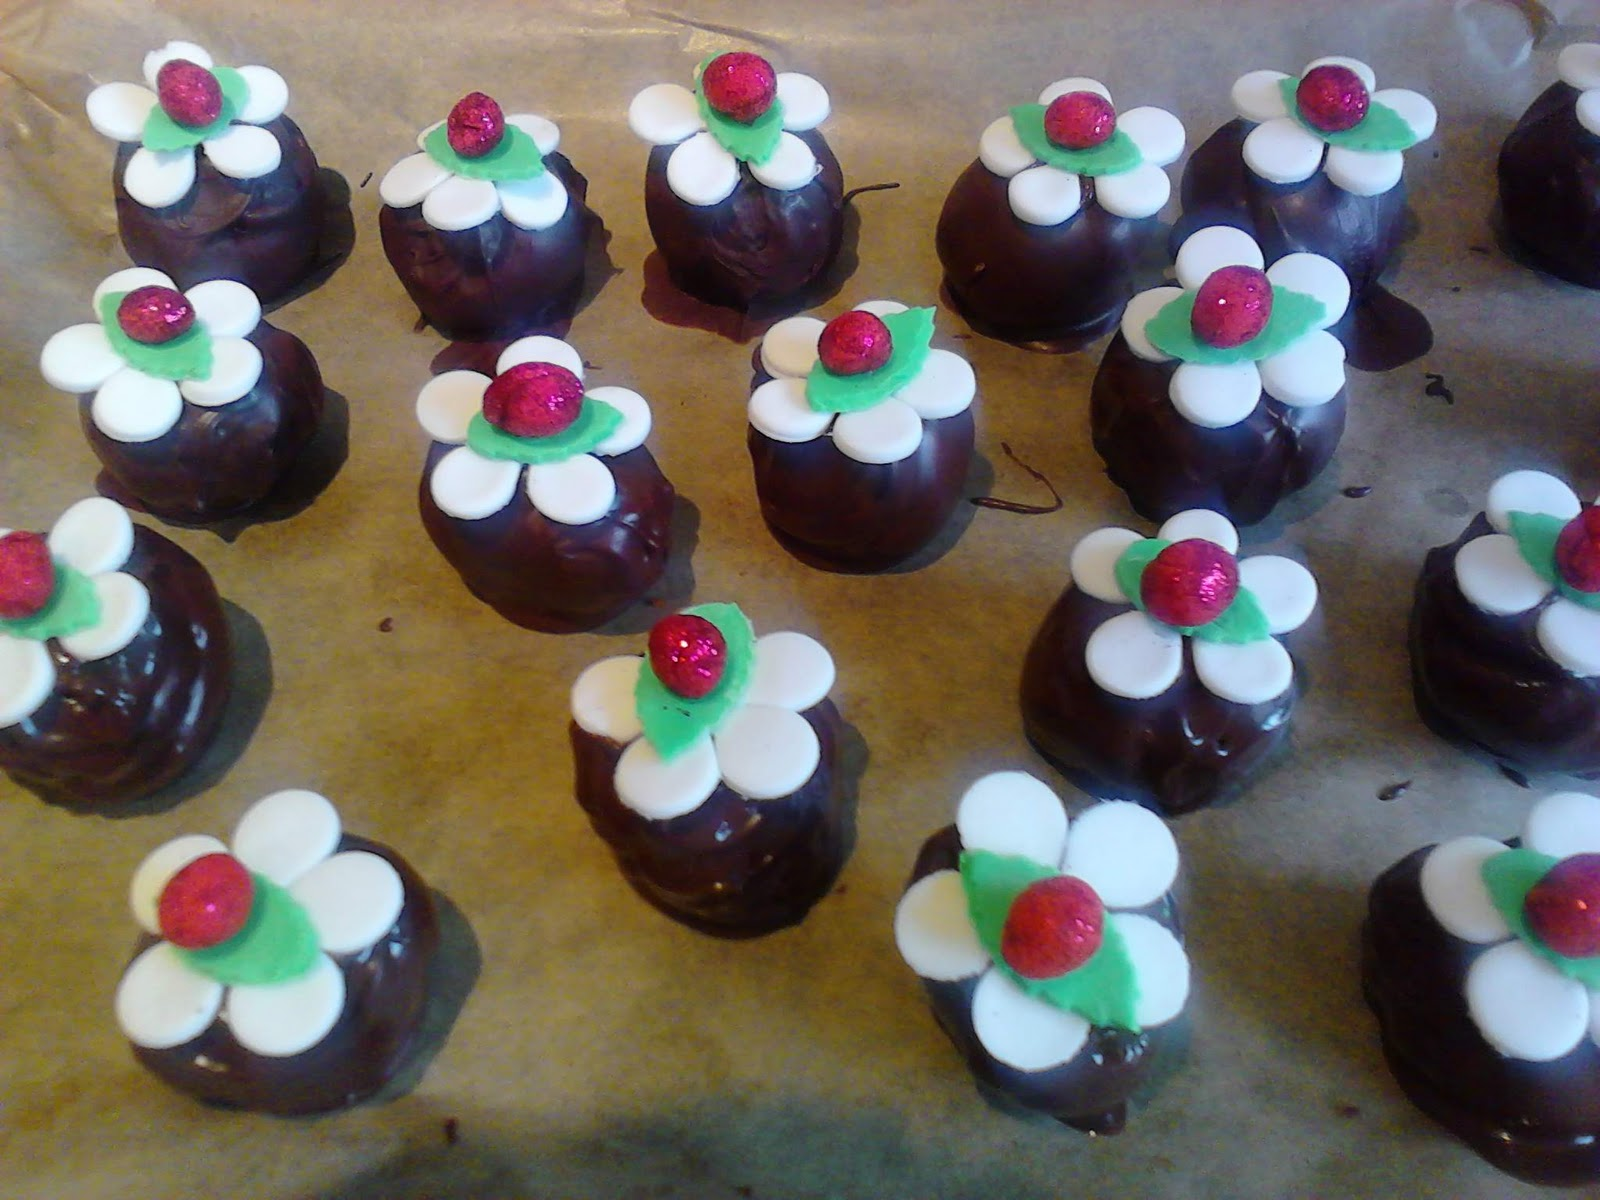 Cake Balls Decorated For Christmas : Utterly Scrummy Food For Families: Silver Spoon Mich ...